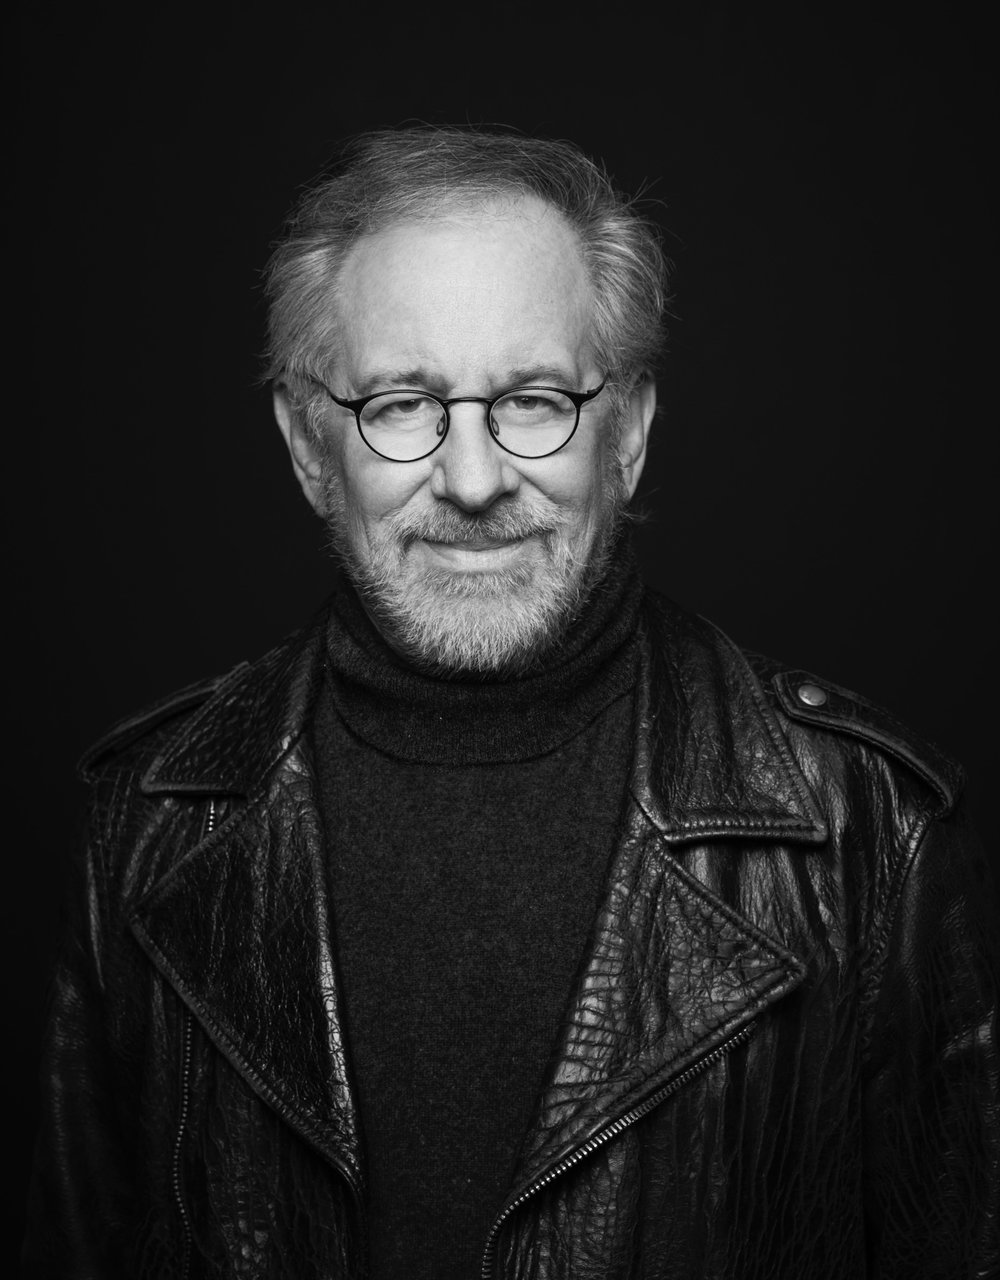 "Steven Spielberg - Steven Spielberg, one of the industry's most successful and influential filmmakers, is Chairman of Amblin Partners. Formed in 2015, Spielberg leads the content creation company in partnership with Participant Media, Reliance Entertainment, Entertainment One, Alibaba Pictures and Universal Pictures.Spielberg is also, collectively, the top-grossing director of all time, having helmed such blockbusters as ""Jaws,"" ""E.T. The Extra-Terrestrial,"" the ""Indiana Jones"" franchise, and ""Jurassic Park."" Among his myriad honors, he is a three-time Academy Award® winner for Best Director for ""Saving Private Ryan"" and ""Schindler's List"" and Best Picture for ""Schindler's List."" He has also earned Academy Award® nominations for Best Director for ""Lincoln,"" ""Munich,"" ""E.T. The Extra-Terrestrial,"" ""Raiders of the Lost Ark,"" and ""Close Encounters of the Third Kind."" In 2000, he received the DGA's Lifetime Achievement Award.  He is also the recipient of the Irving G. Thalberg Award from the Academy of Motion Picture Arts and Sciences, the Hollywood Foreign Press's Cecil B. DeMille Award, the Kennedy Center Honor, and numerous other career tributes."